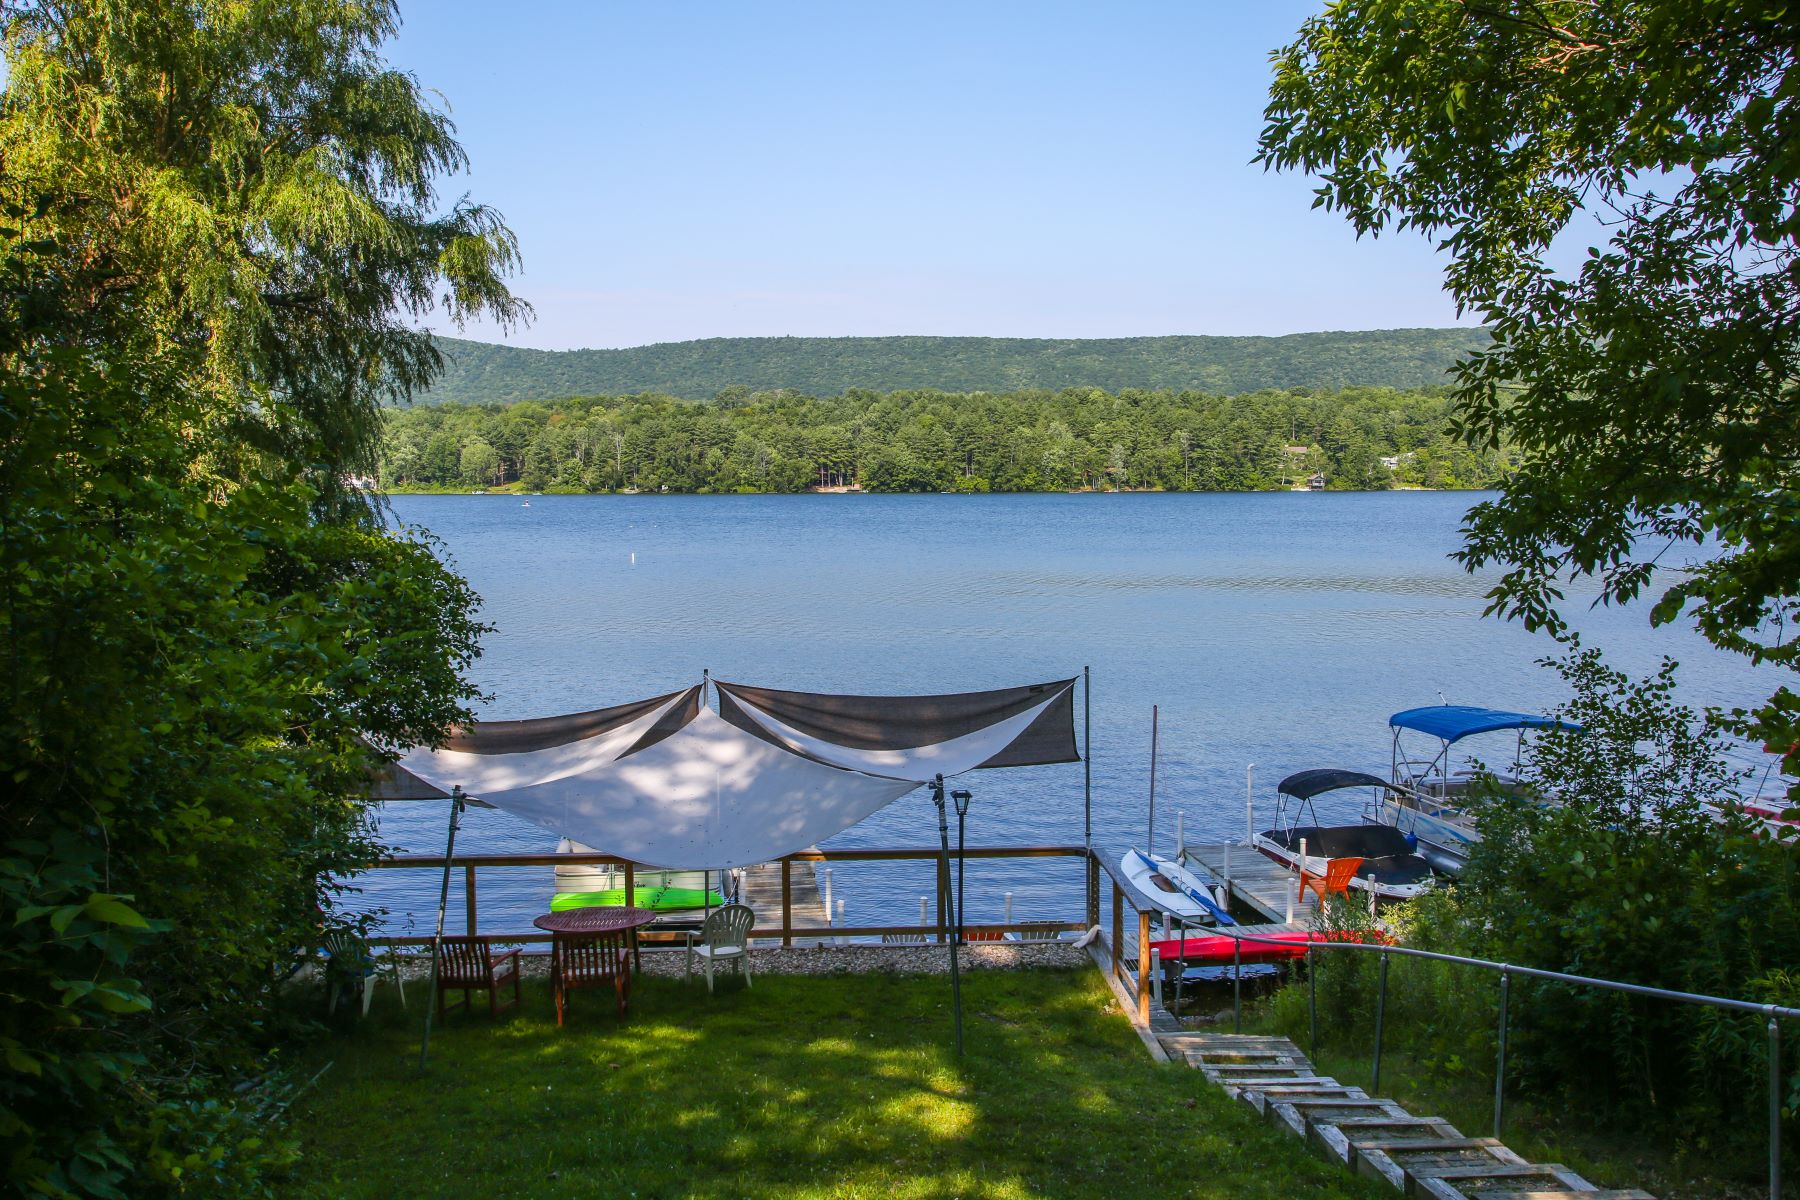 Single Family Home for Sale at Stunning Contemporary with Deeded Lake and Boat Access 29 Mahkeenac Rd Stockbridge, Massachusetts 01262 United States